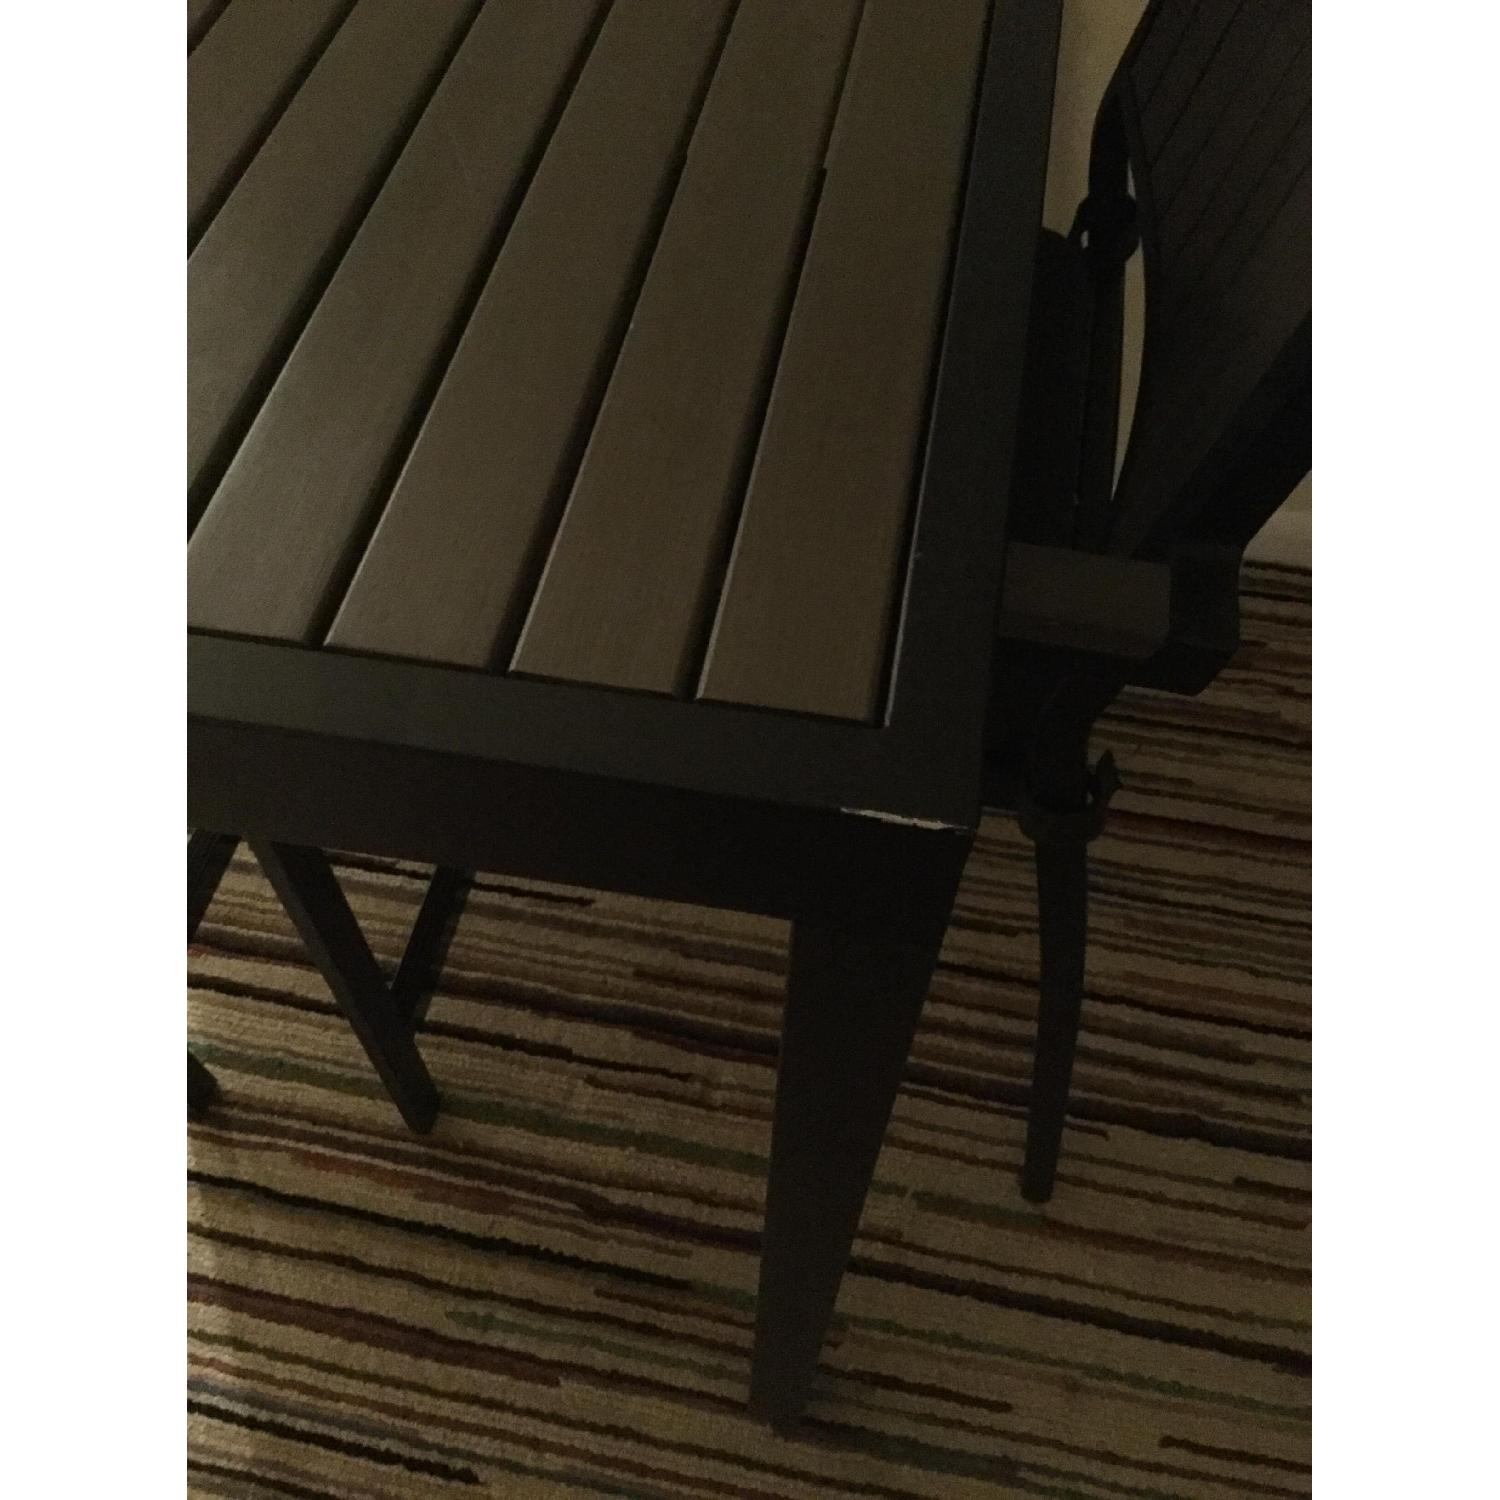 Crate & Barrel Alfresco Home Outdoor Dining Table w/ 2 Chairs - image-4